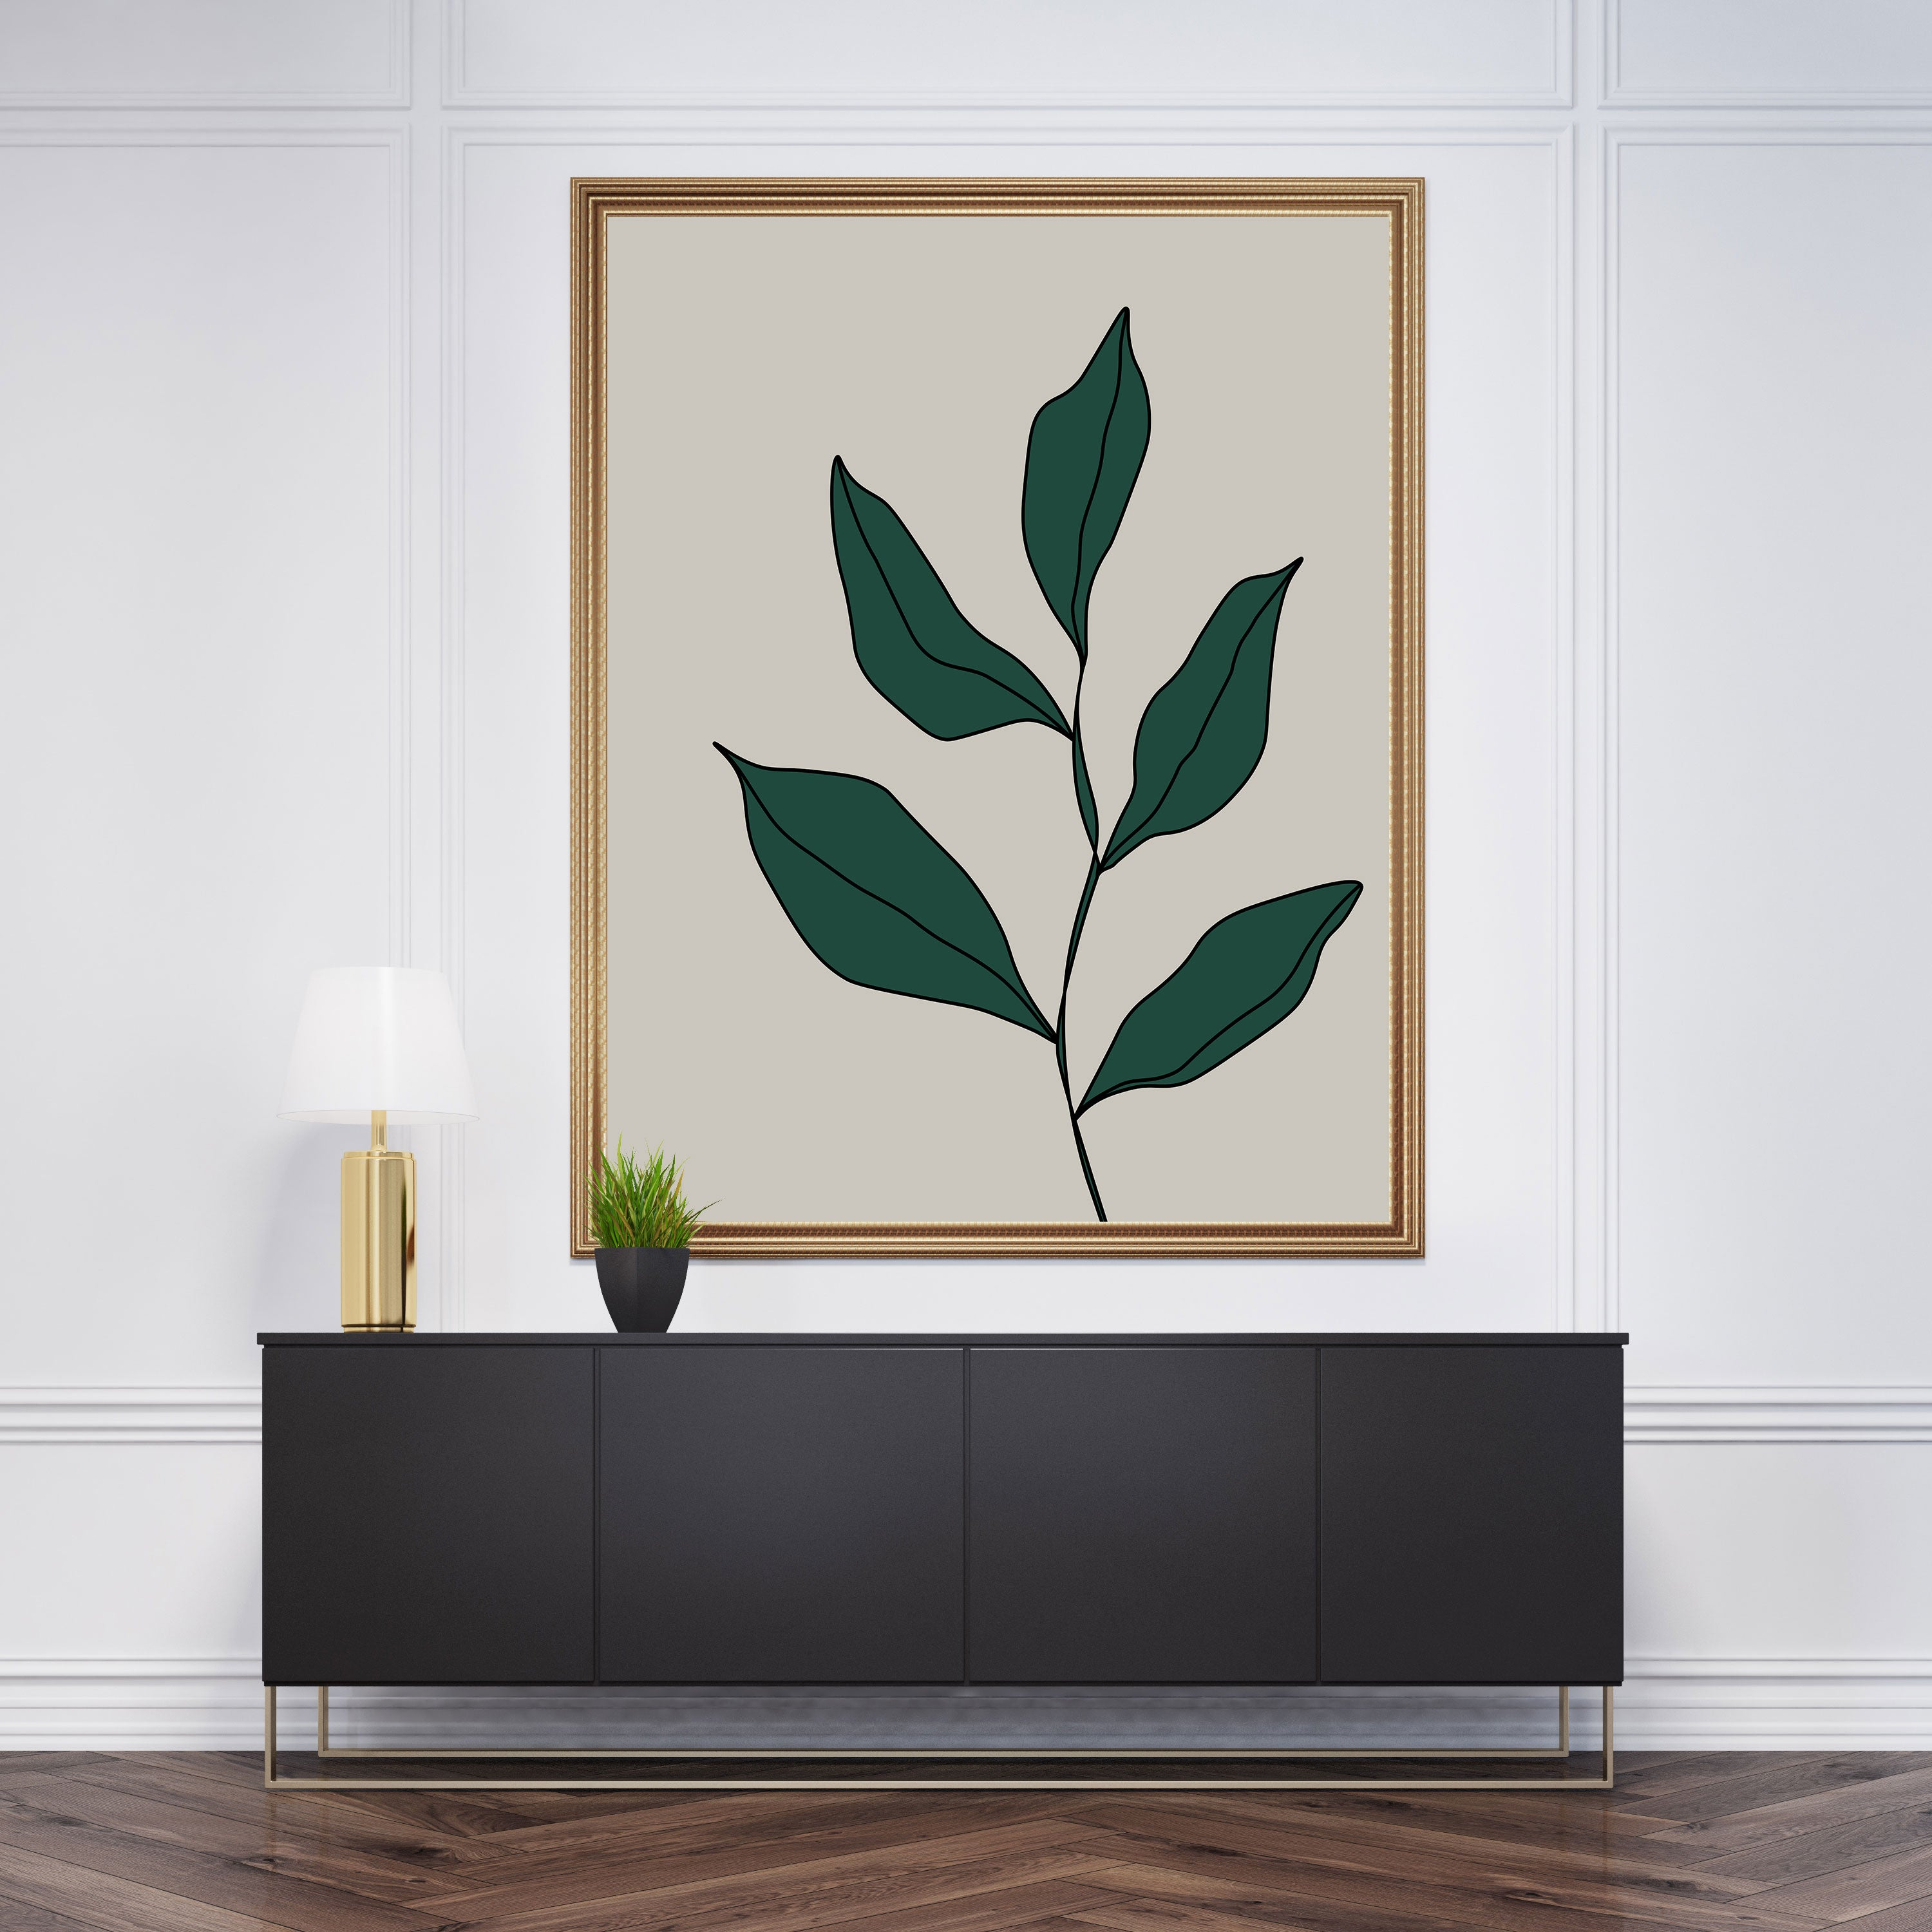 Abstract poster print with green leaves on grey background - framed